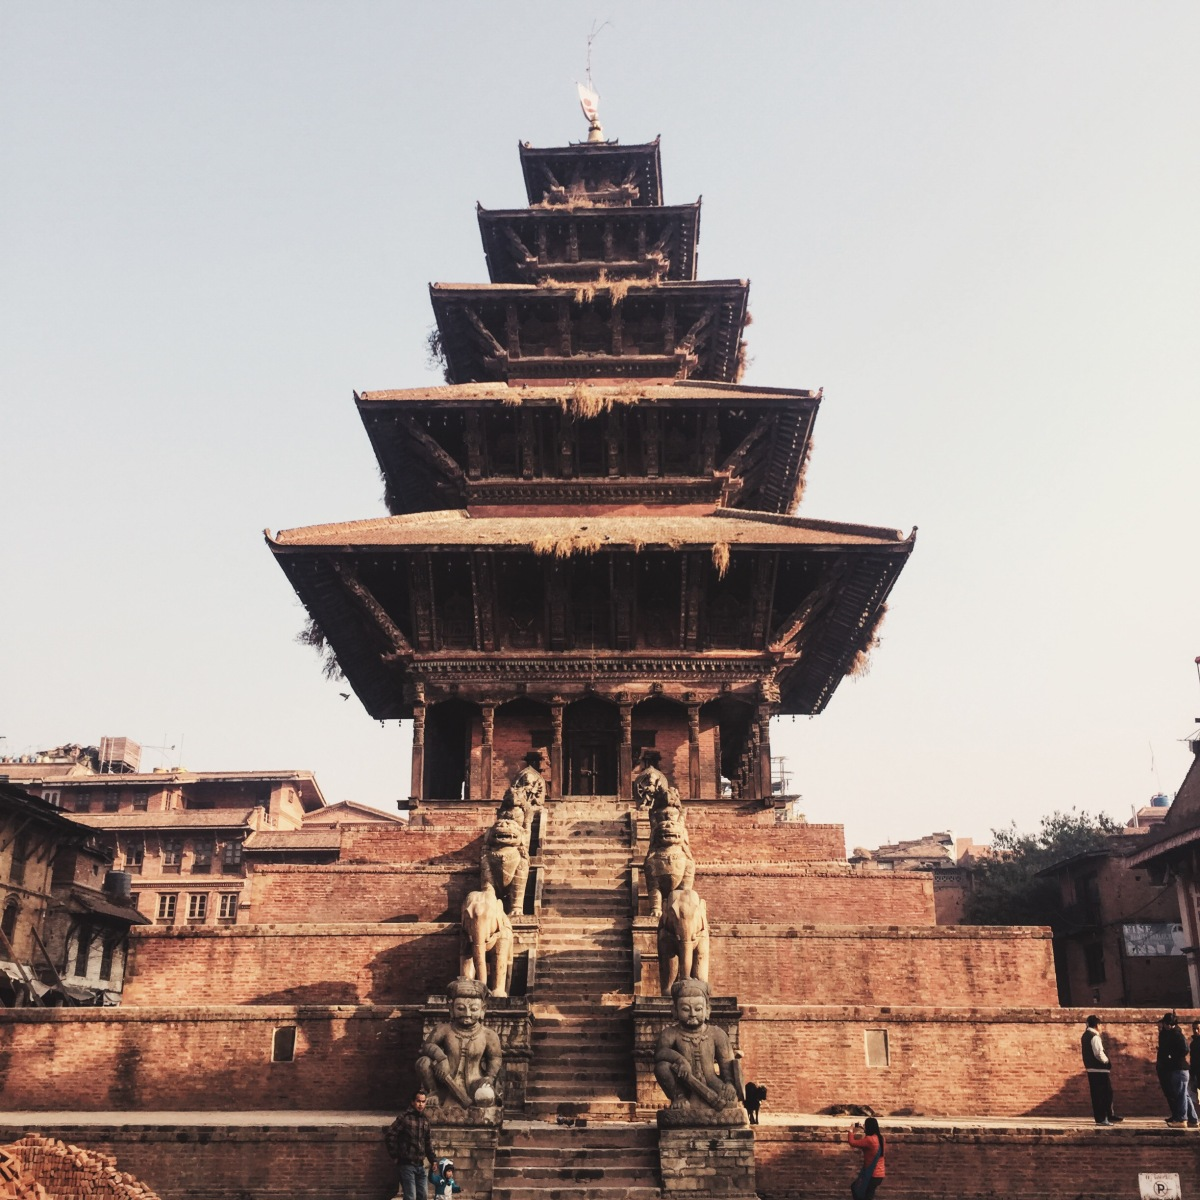 Best Tattoo In Kathmandu And Pokhara Nepal: Bhaktapur And Nagarkot Budget Travel Guide: Of Temples And